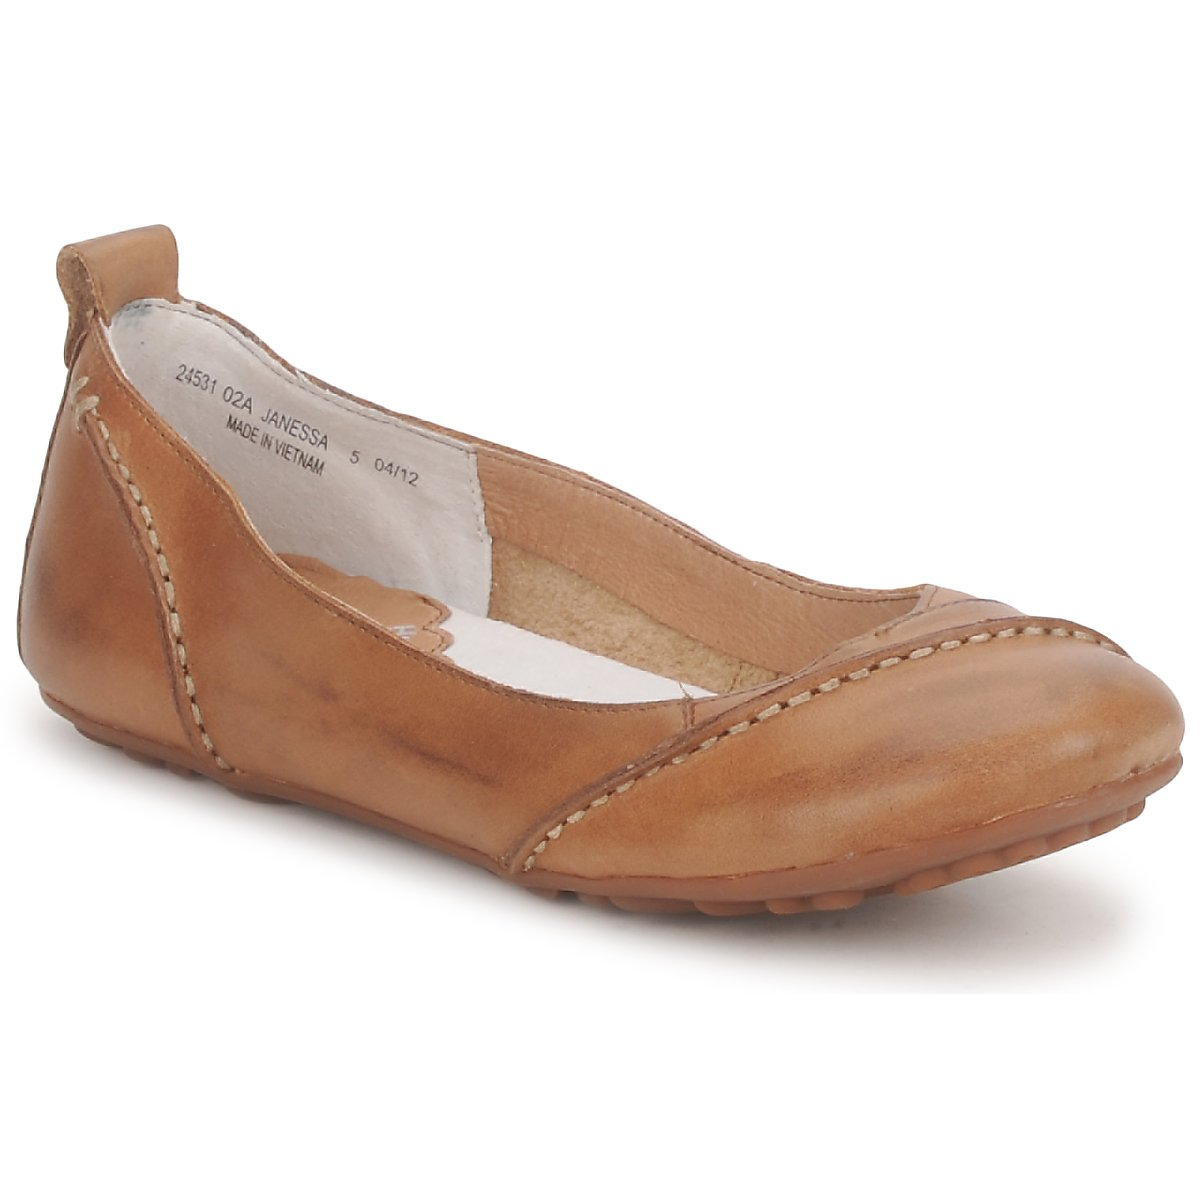 Ballerinas Hush puppies JANESSA Brown